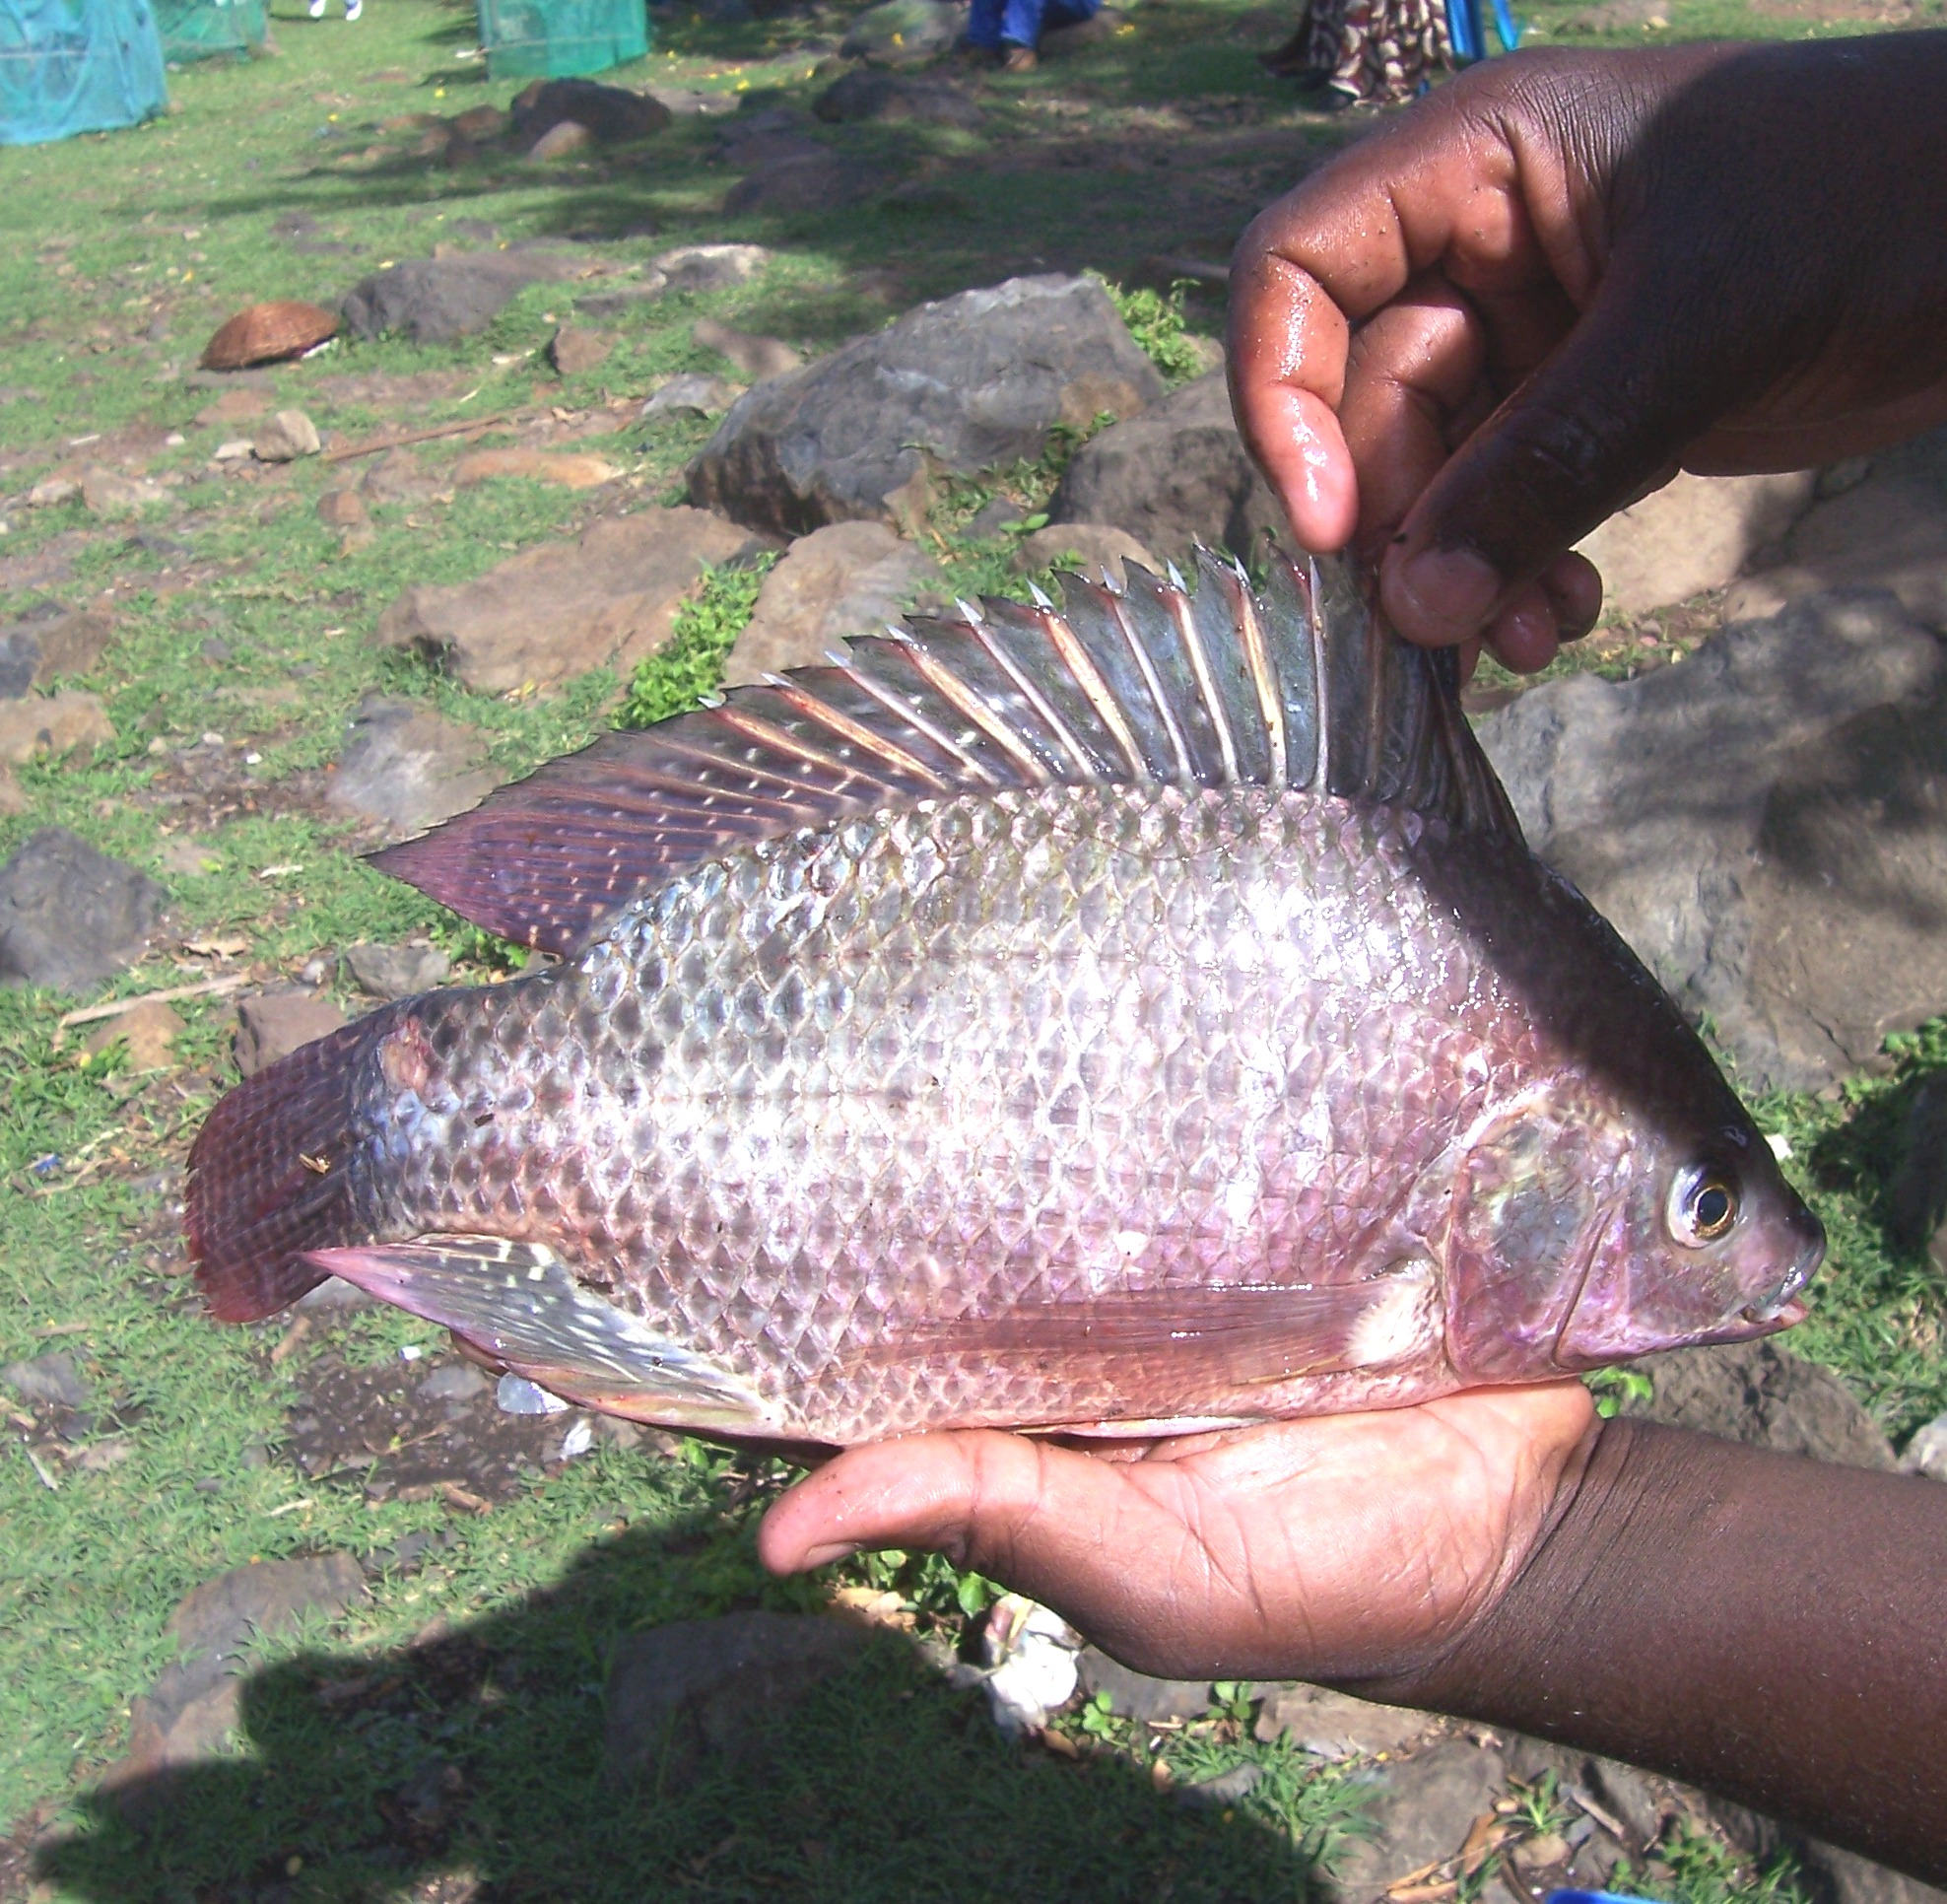 Many of Lake Victoria's popular fish species are disappearing amid increased pollution